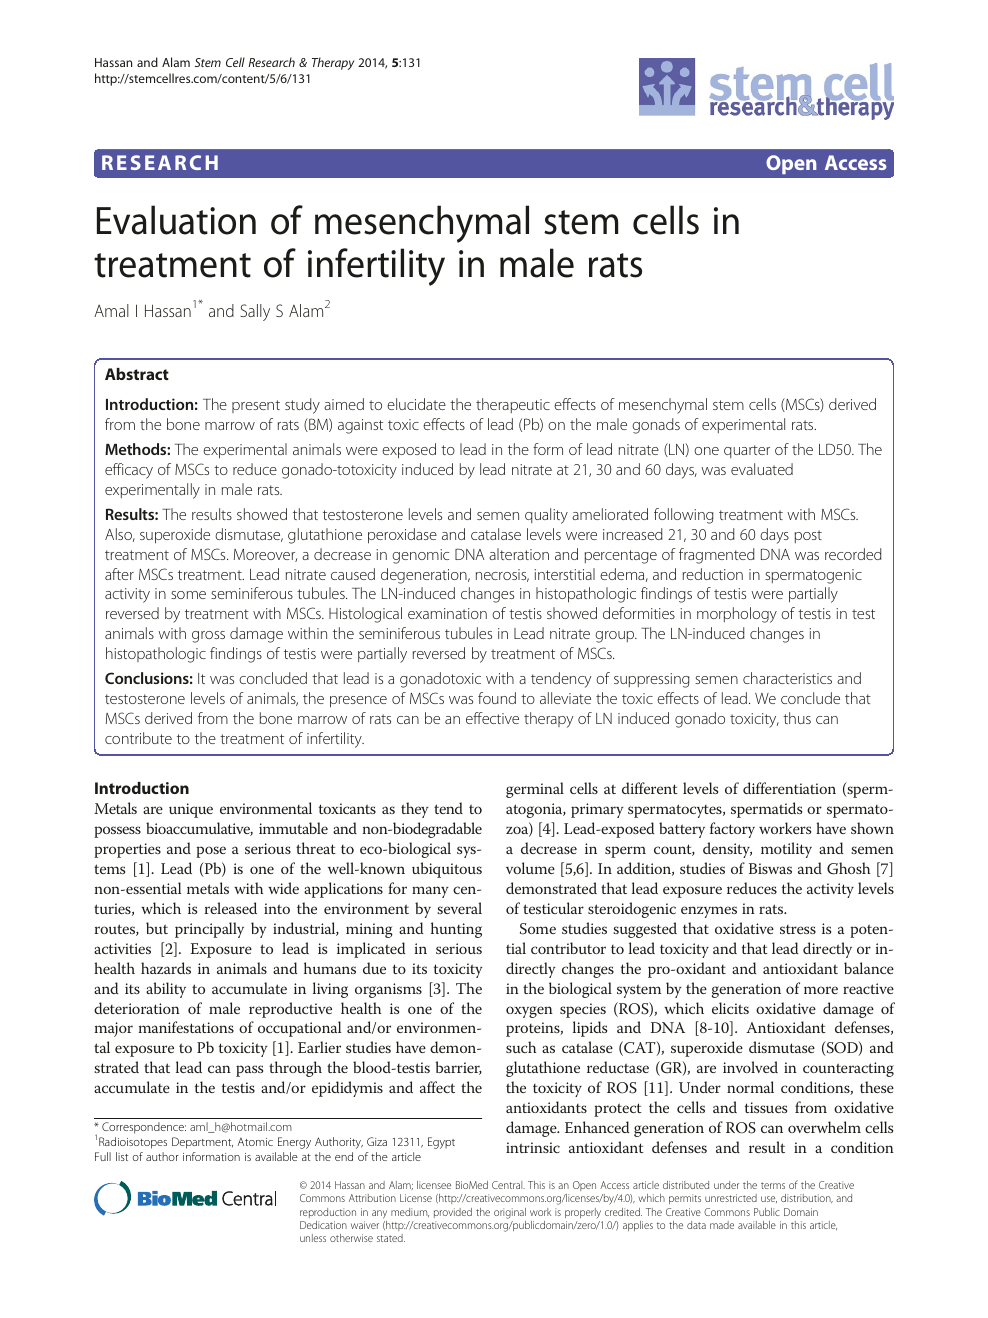 Evaluation of mesenchymal stem cells in treatment of infertility in